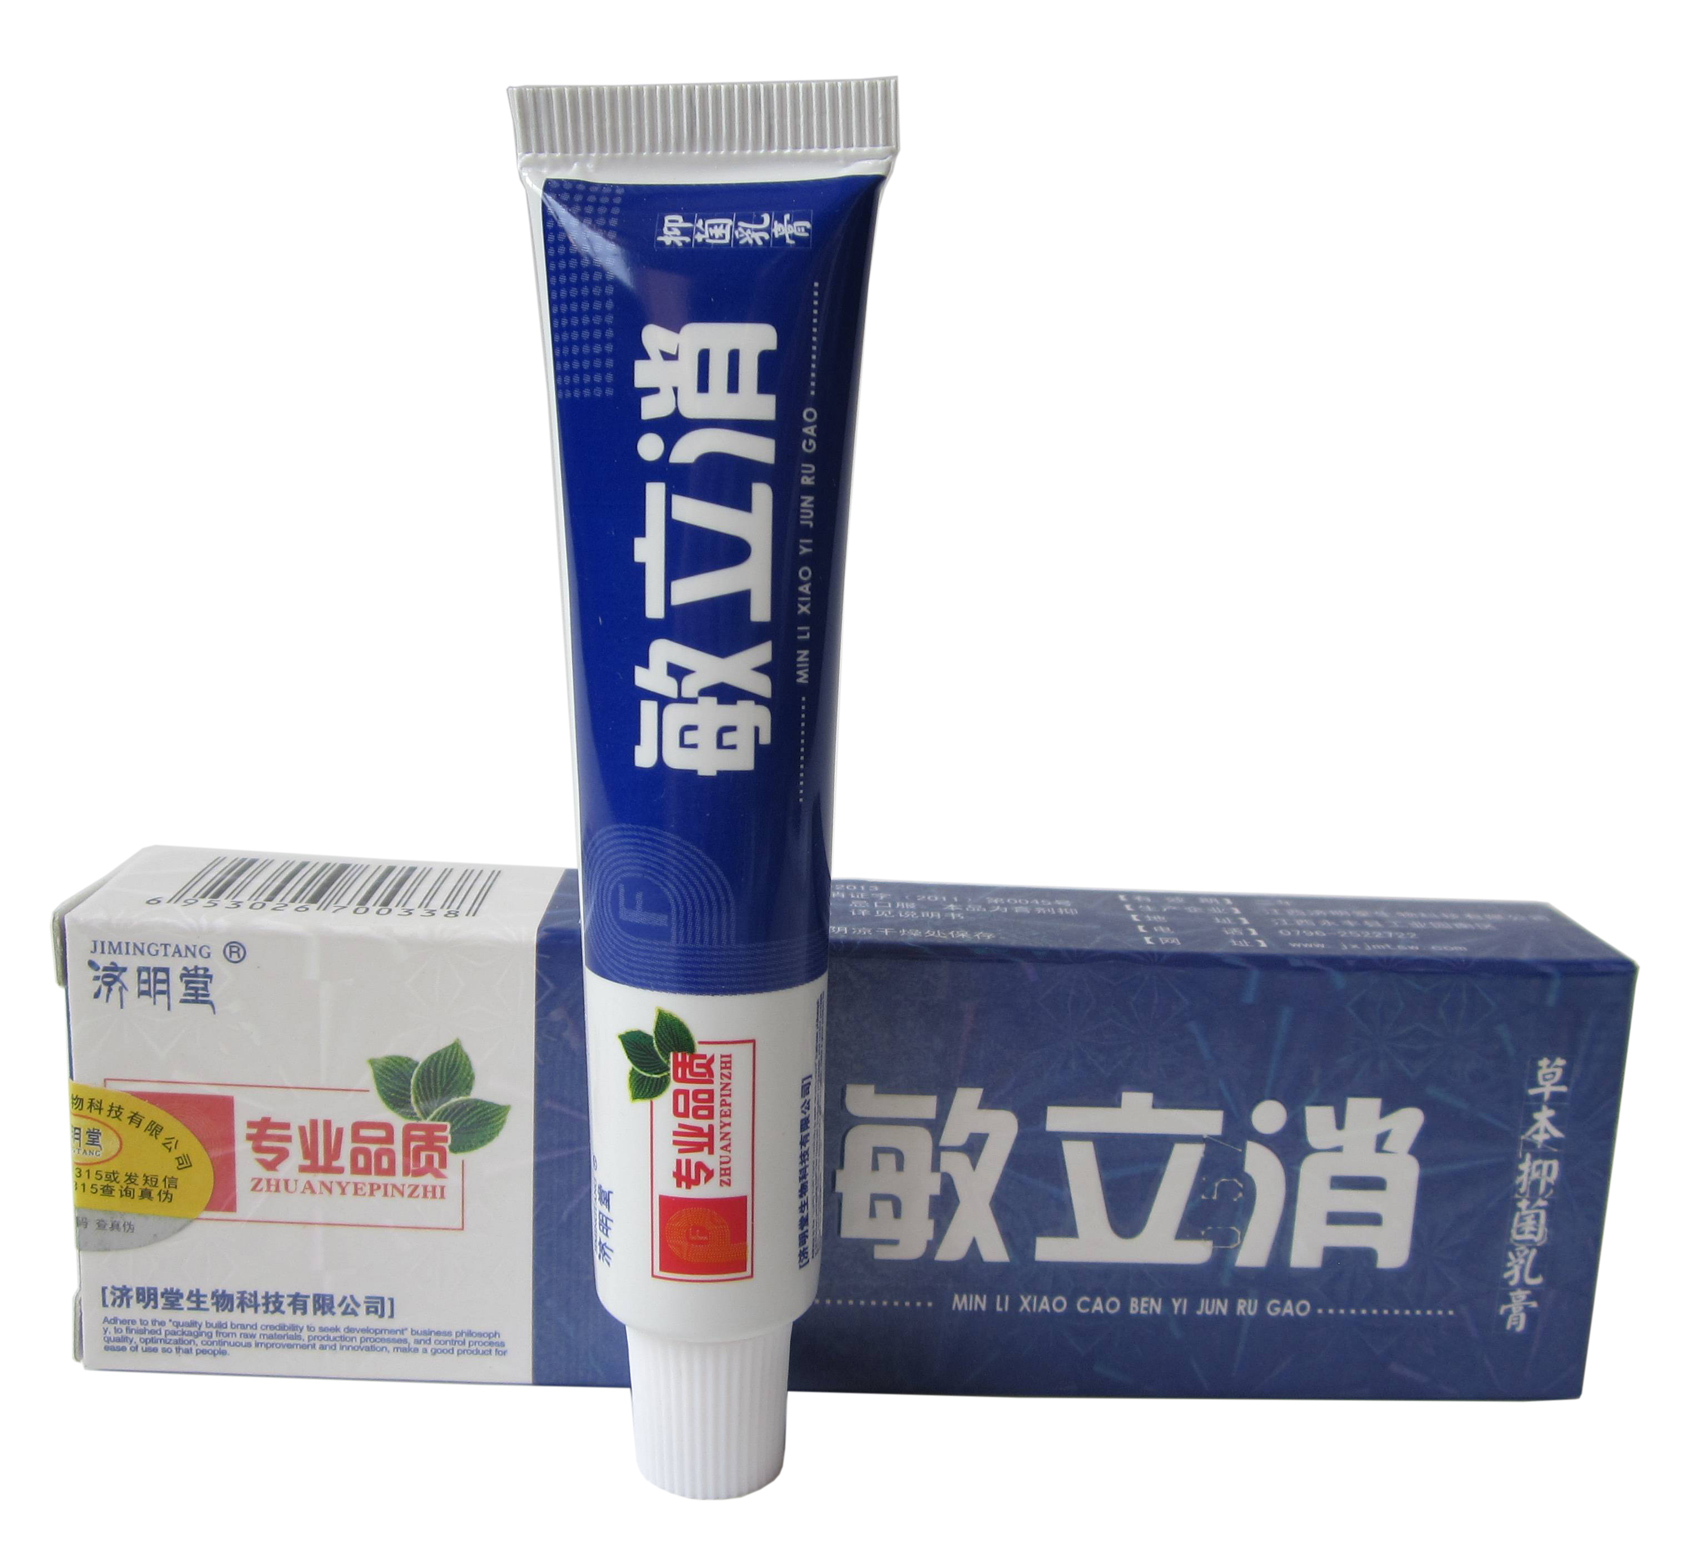 Min strepsils herbal antibacterial cream [buy 、 send 1 with sensitive power dissipation herbal product] franciscan hall Ointment allergic use